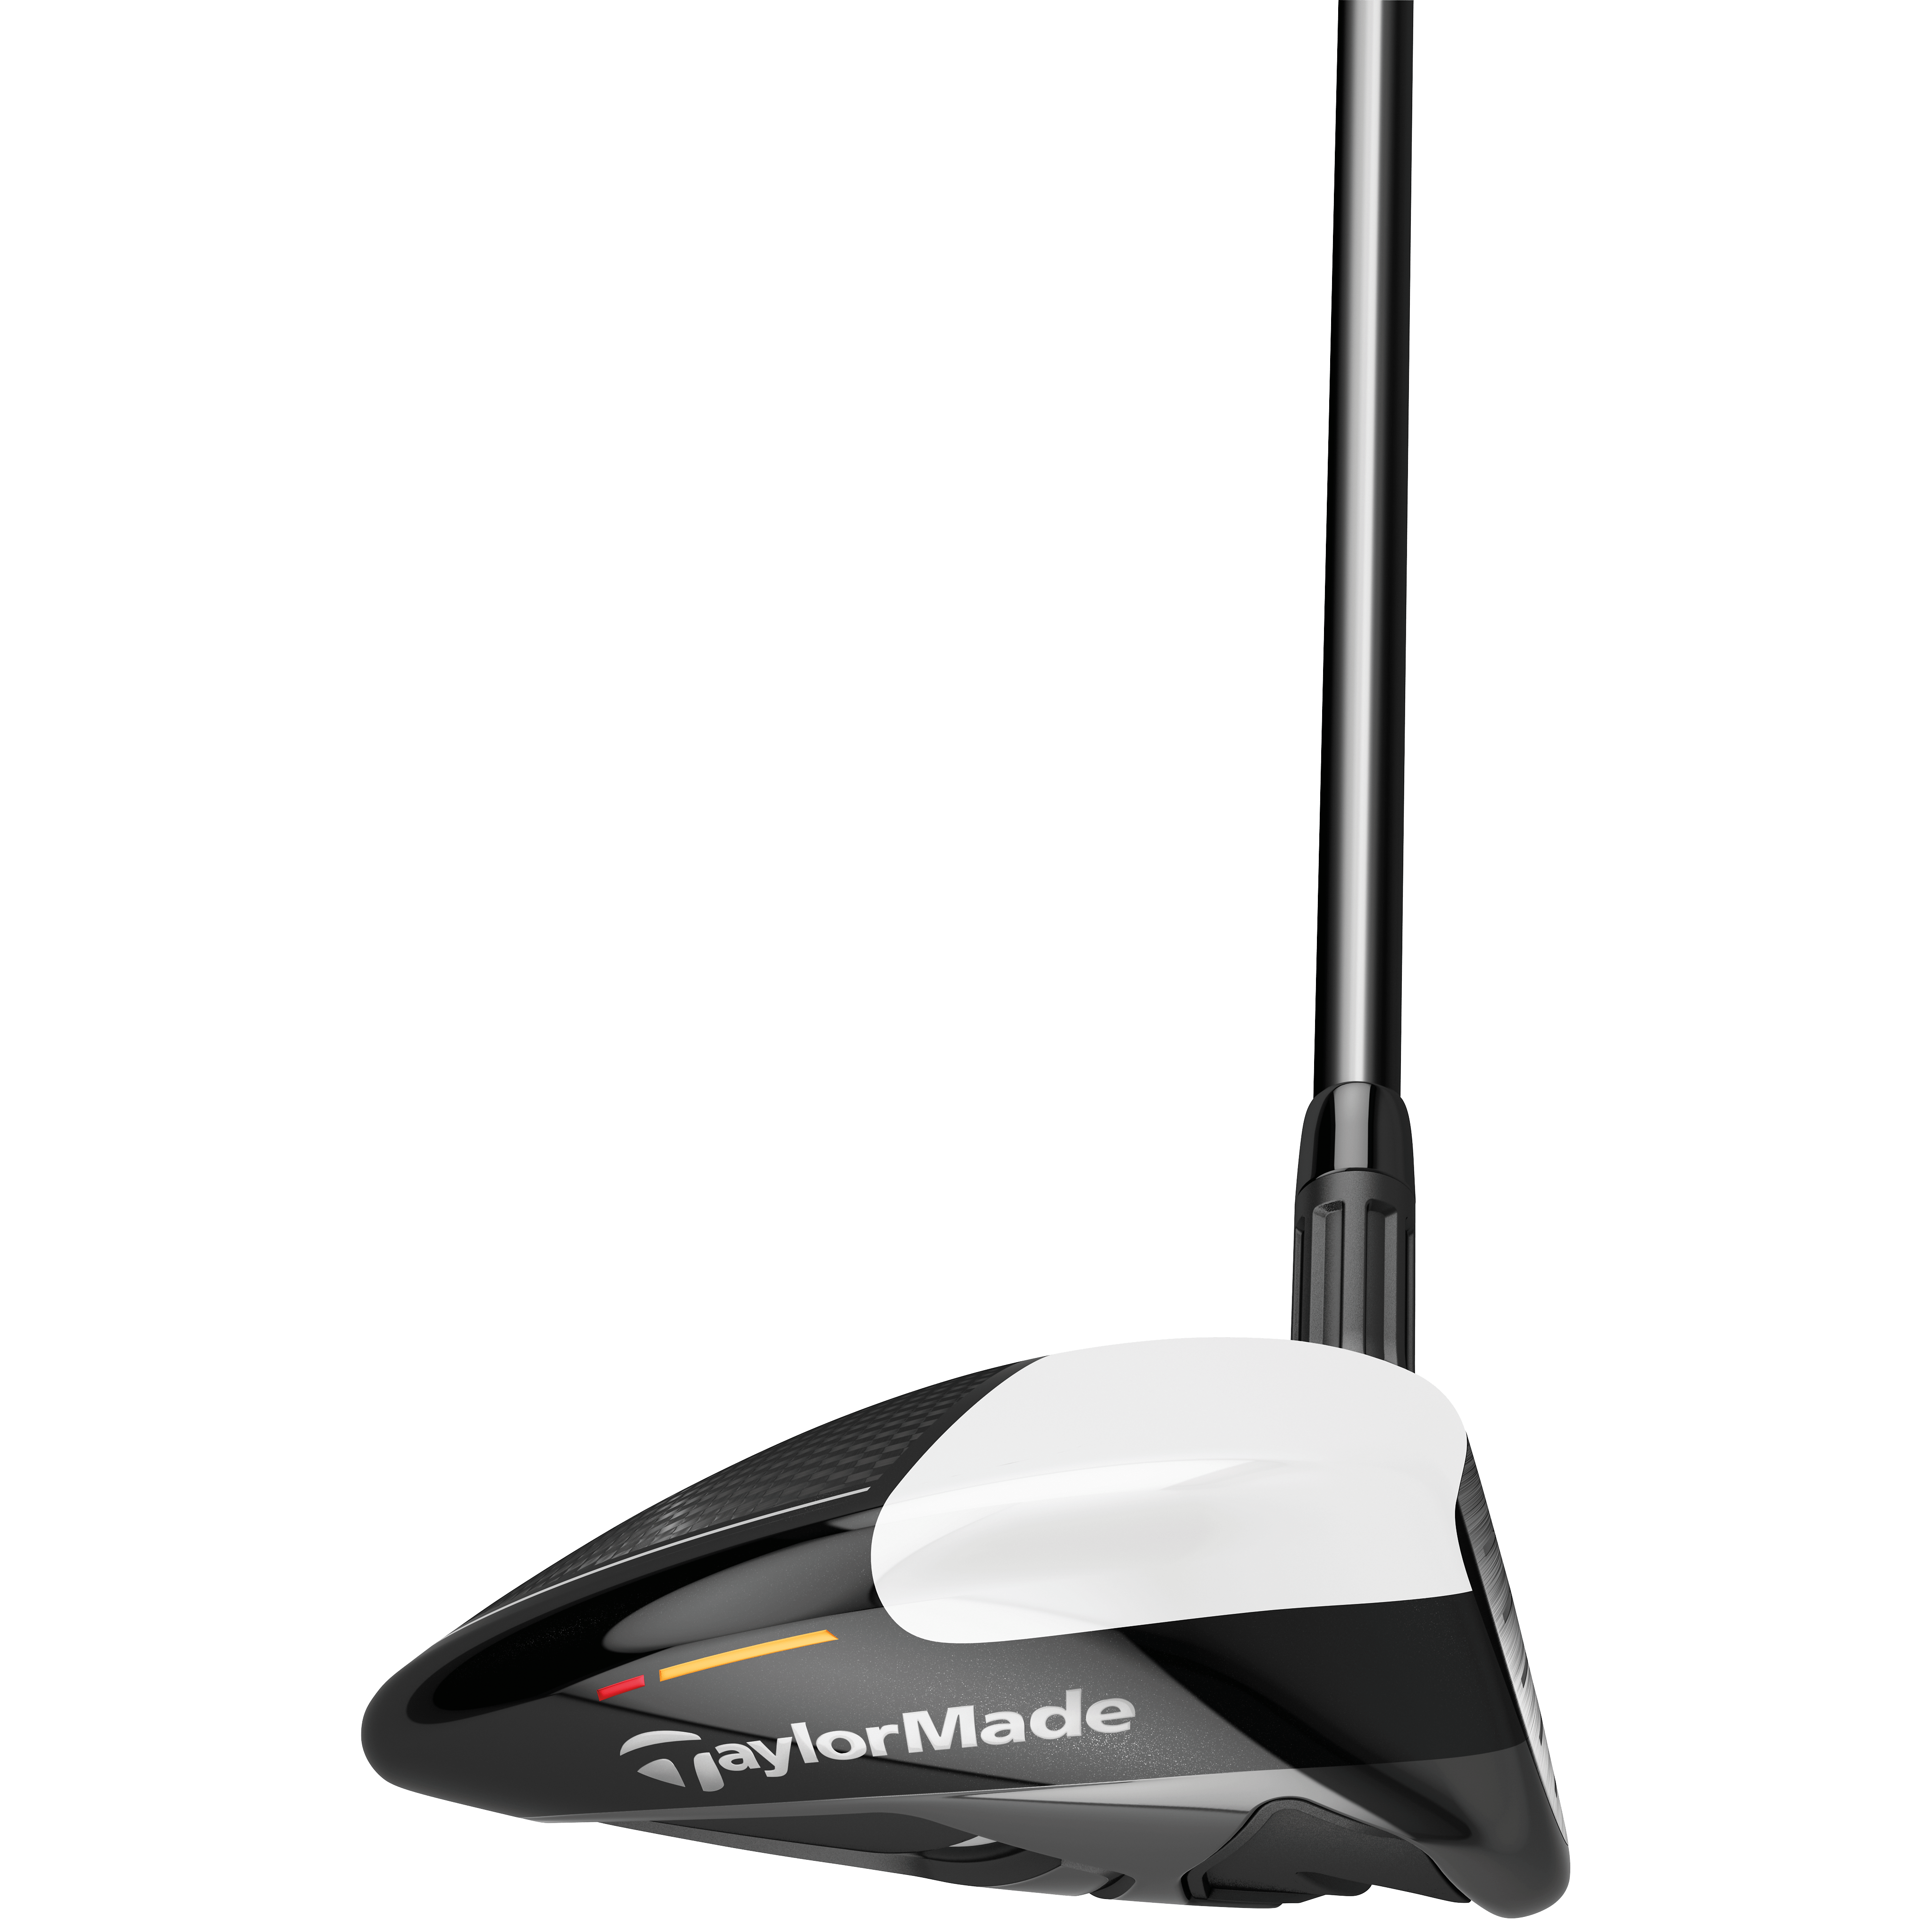 TaylorMade M2 Fairway - 3W - Preowned - Very Good Condition